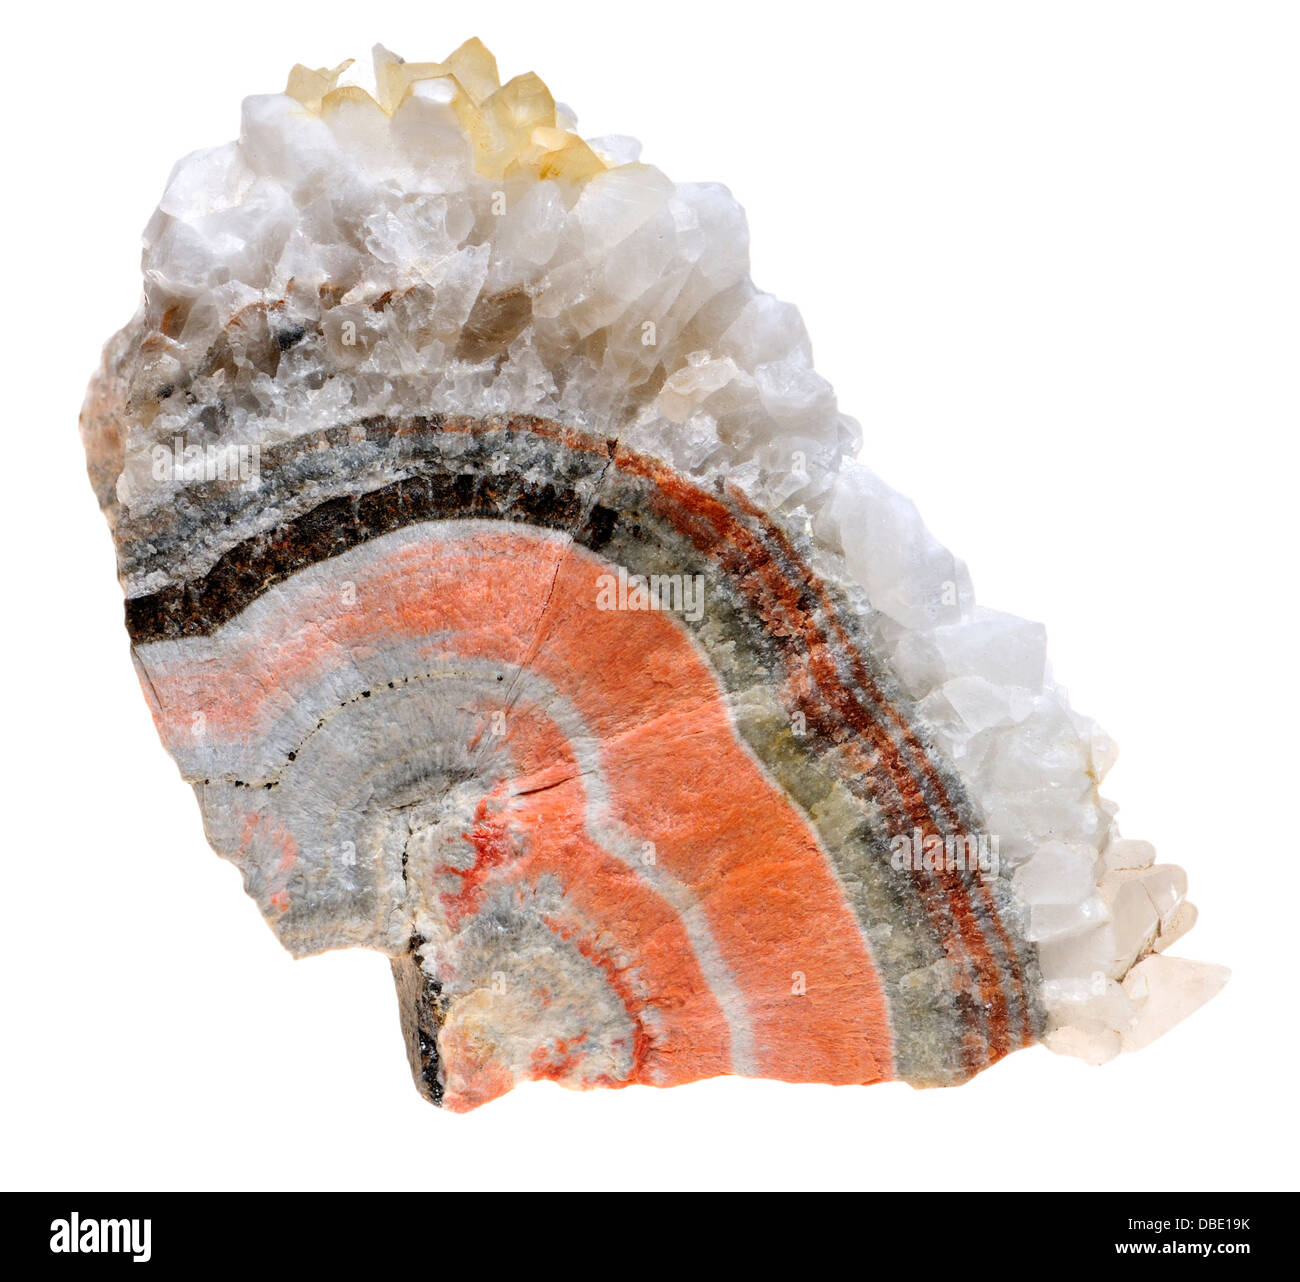 Banded Barian Celestine (strontium sulphate), sphalerite and calcite crystals - Stock Image